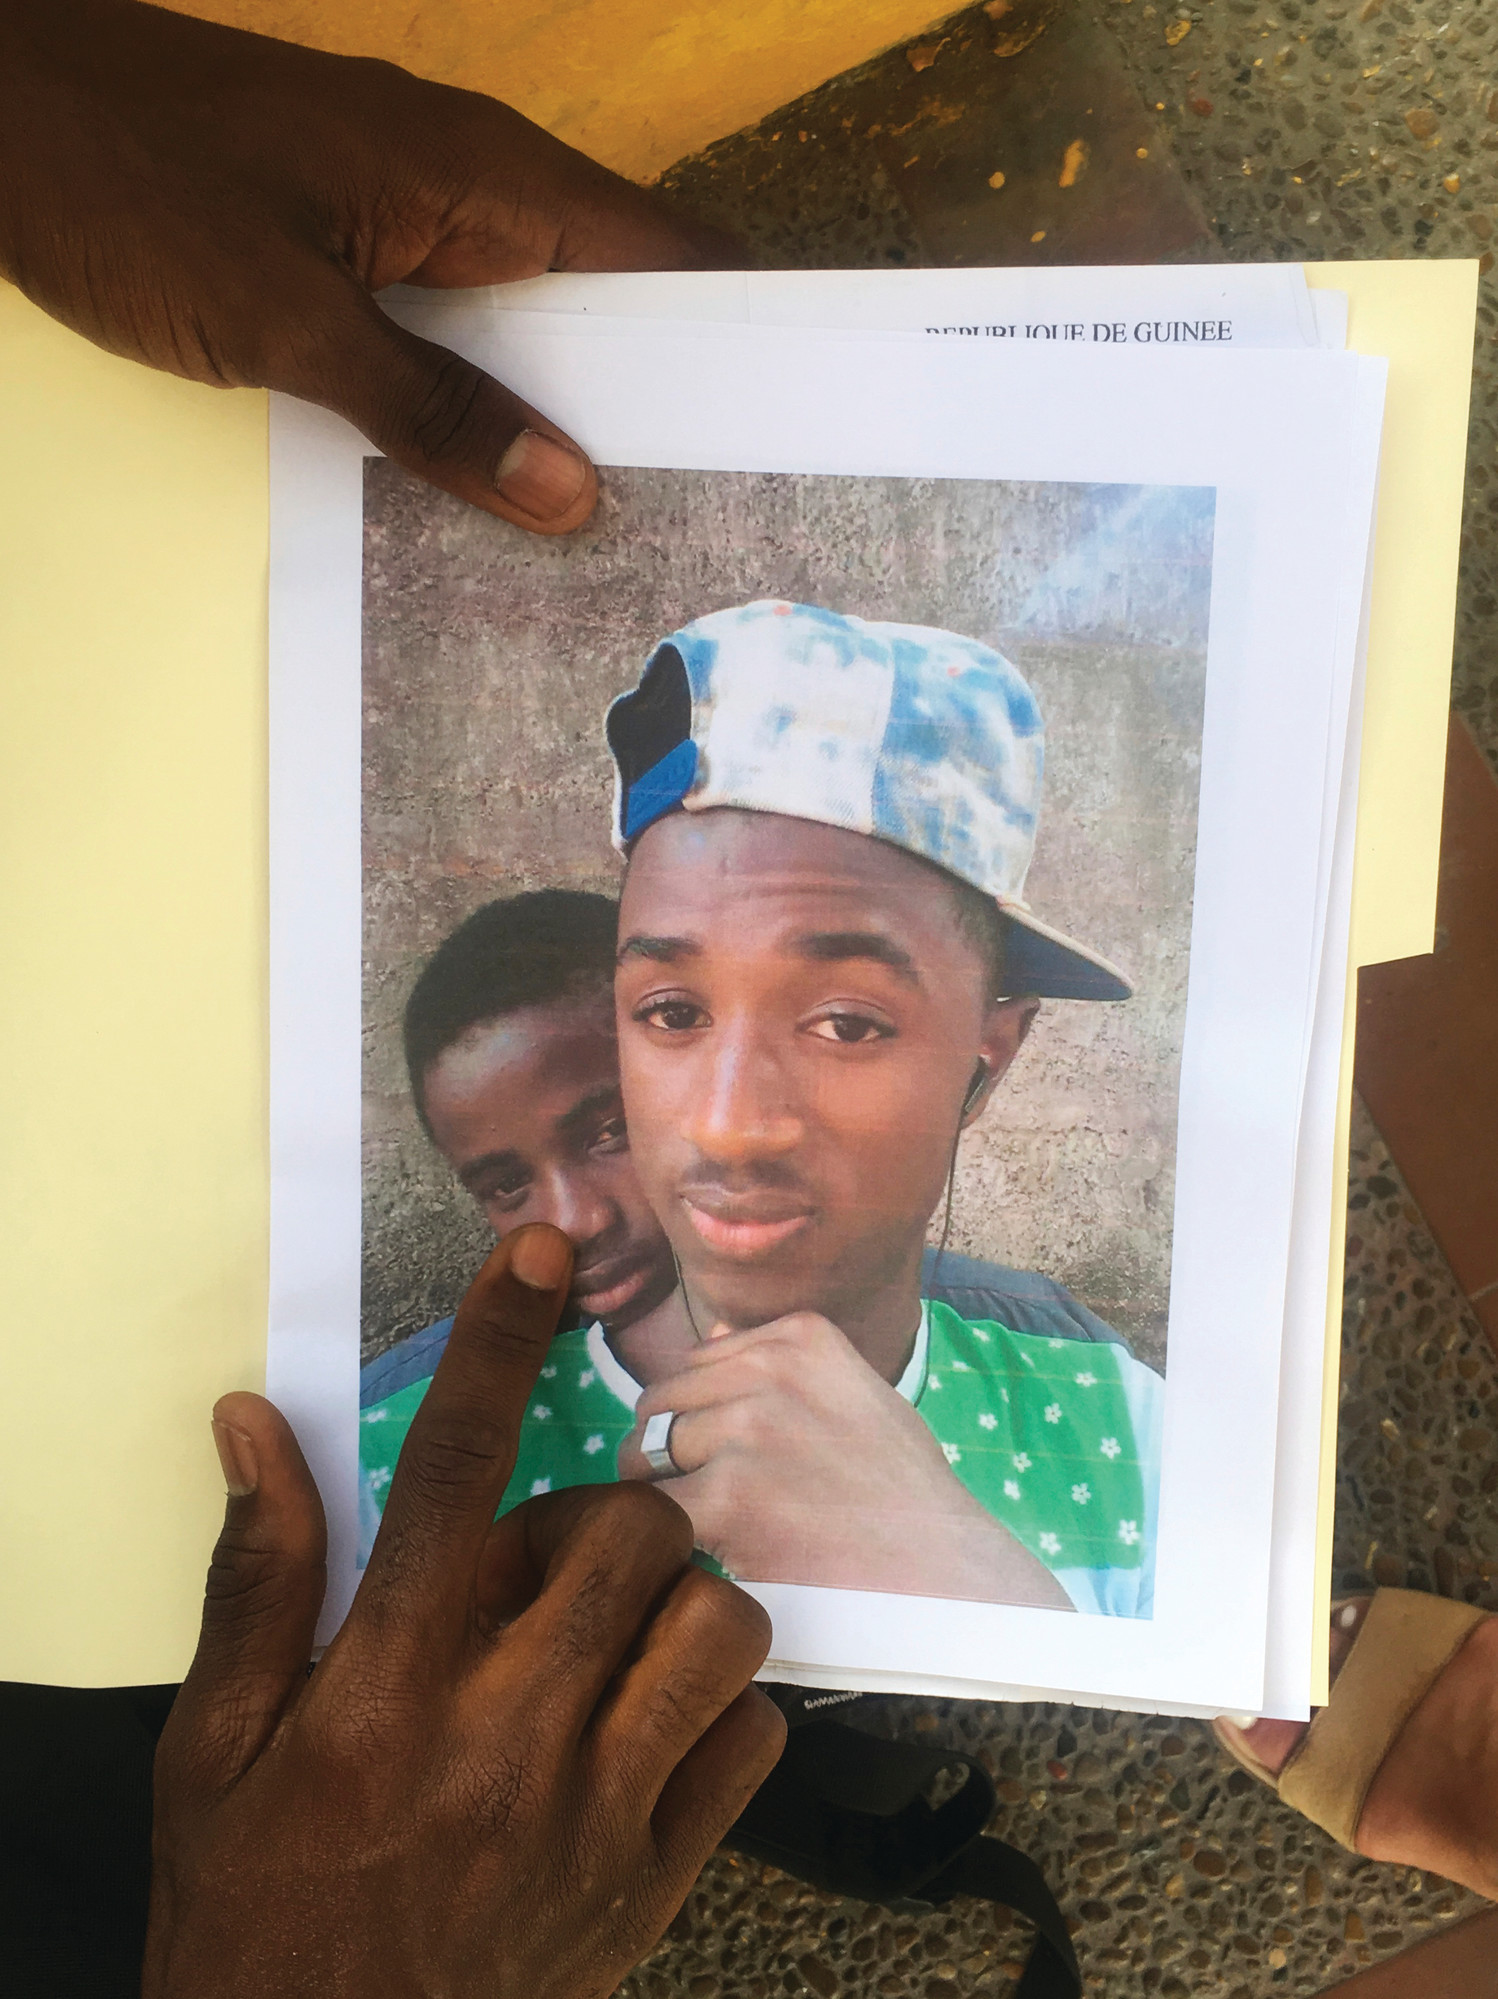 THE ASSOCIATED PRESSMamadou Aliou Barry, who departed from his native Guinea in West Africa when he was 14, a few years ago, shows a print of a selfie with his friend while waiting for entry to the U.S. on the Gateway Bridge in Matamoros, Mexico, which connects to Brownsville, Texas. He said as part of the minority ethnic Fula group, he fears for his life and carries this picture of him and a friend together and another picture of his friend after he was murdered, for his asylum interview.